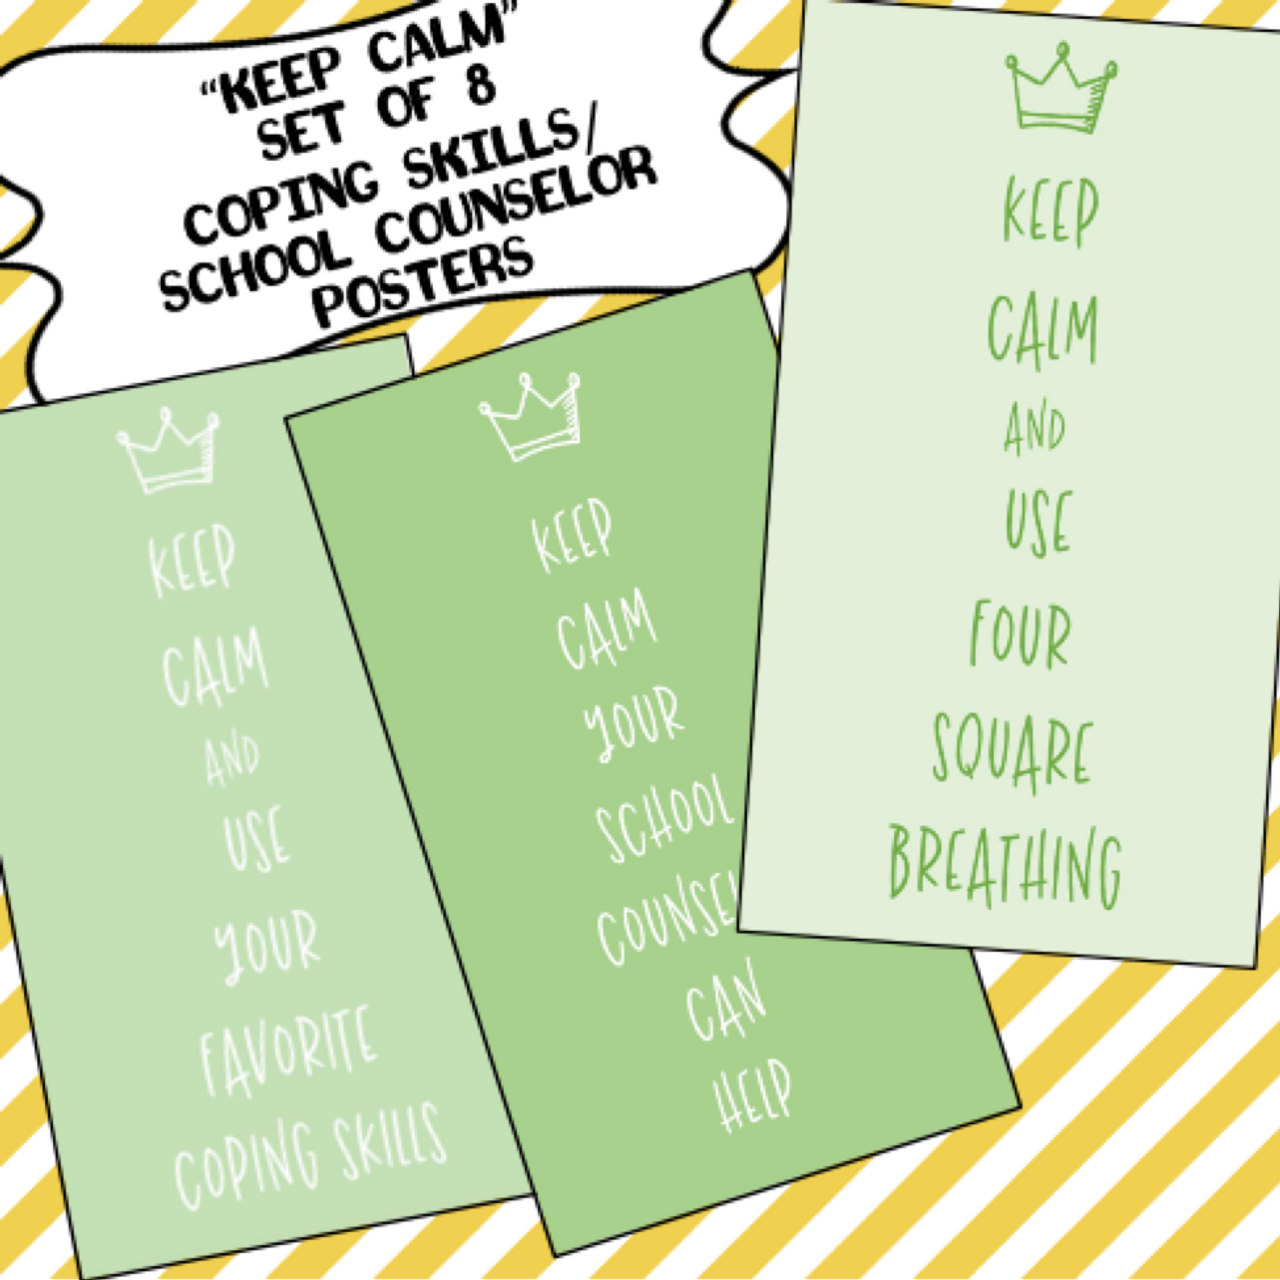 KEEP CALM Poster Set (School Counselor Posters)